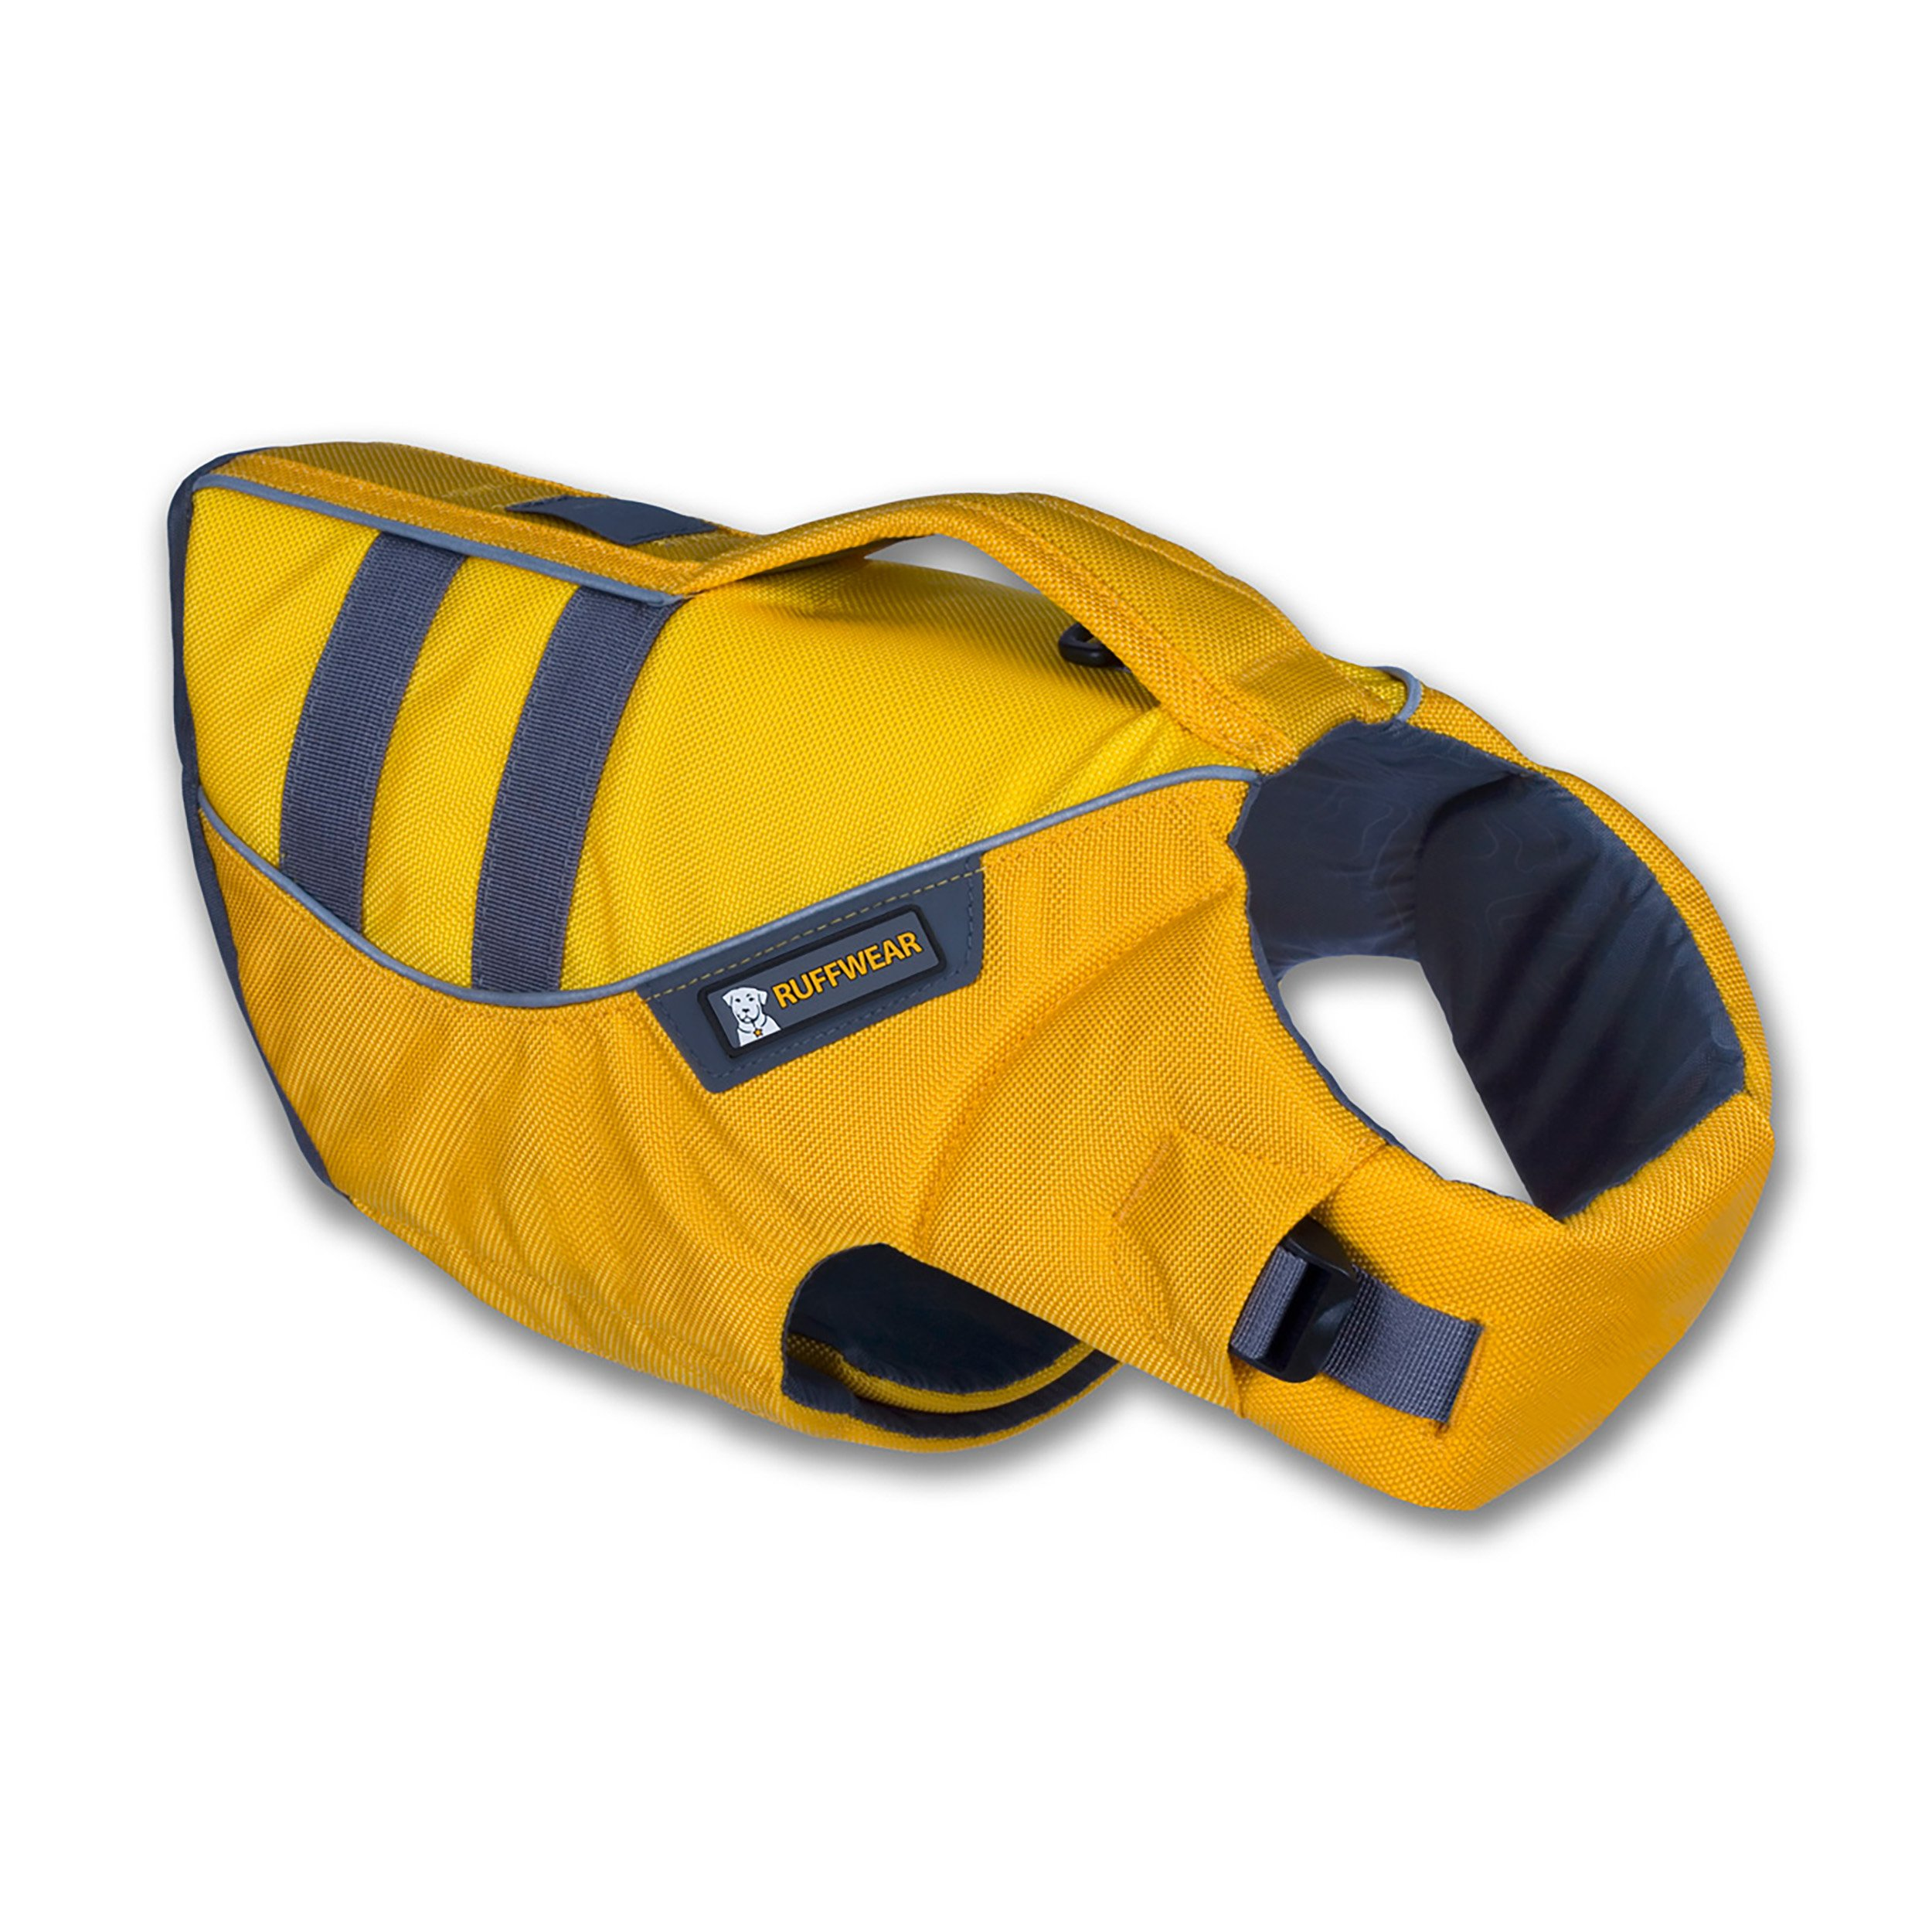 Ruffwear - K-9 Float Coat for Dogs, Buoyant, Secure, Reflective, Dandelion Yellow, Large